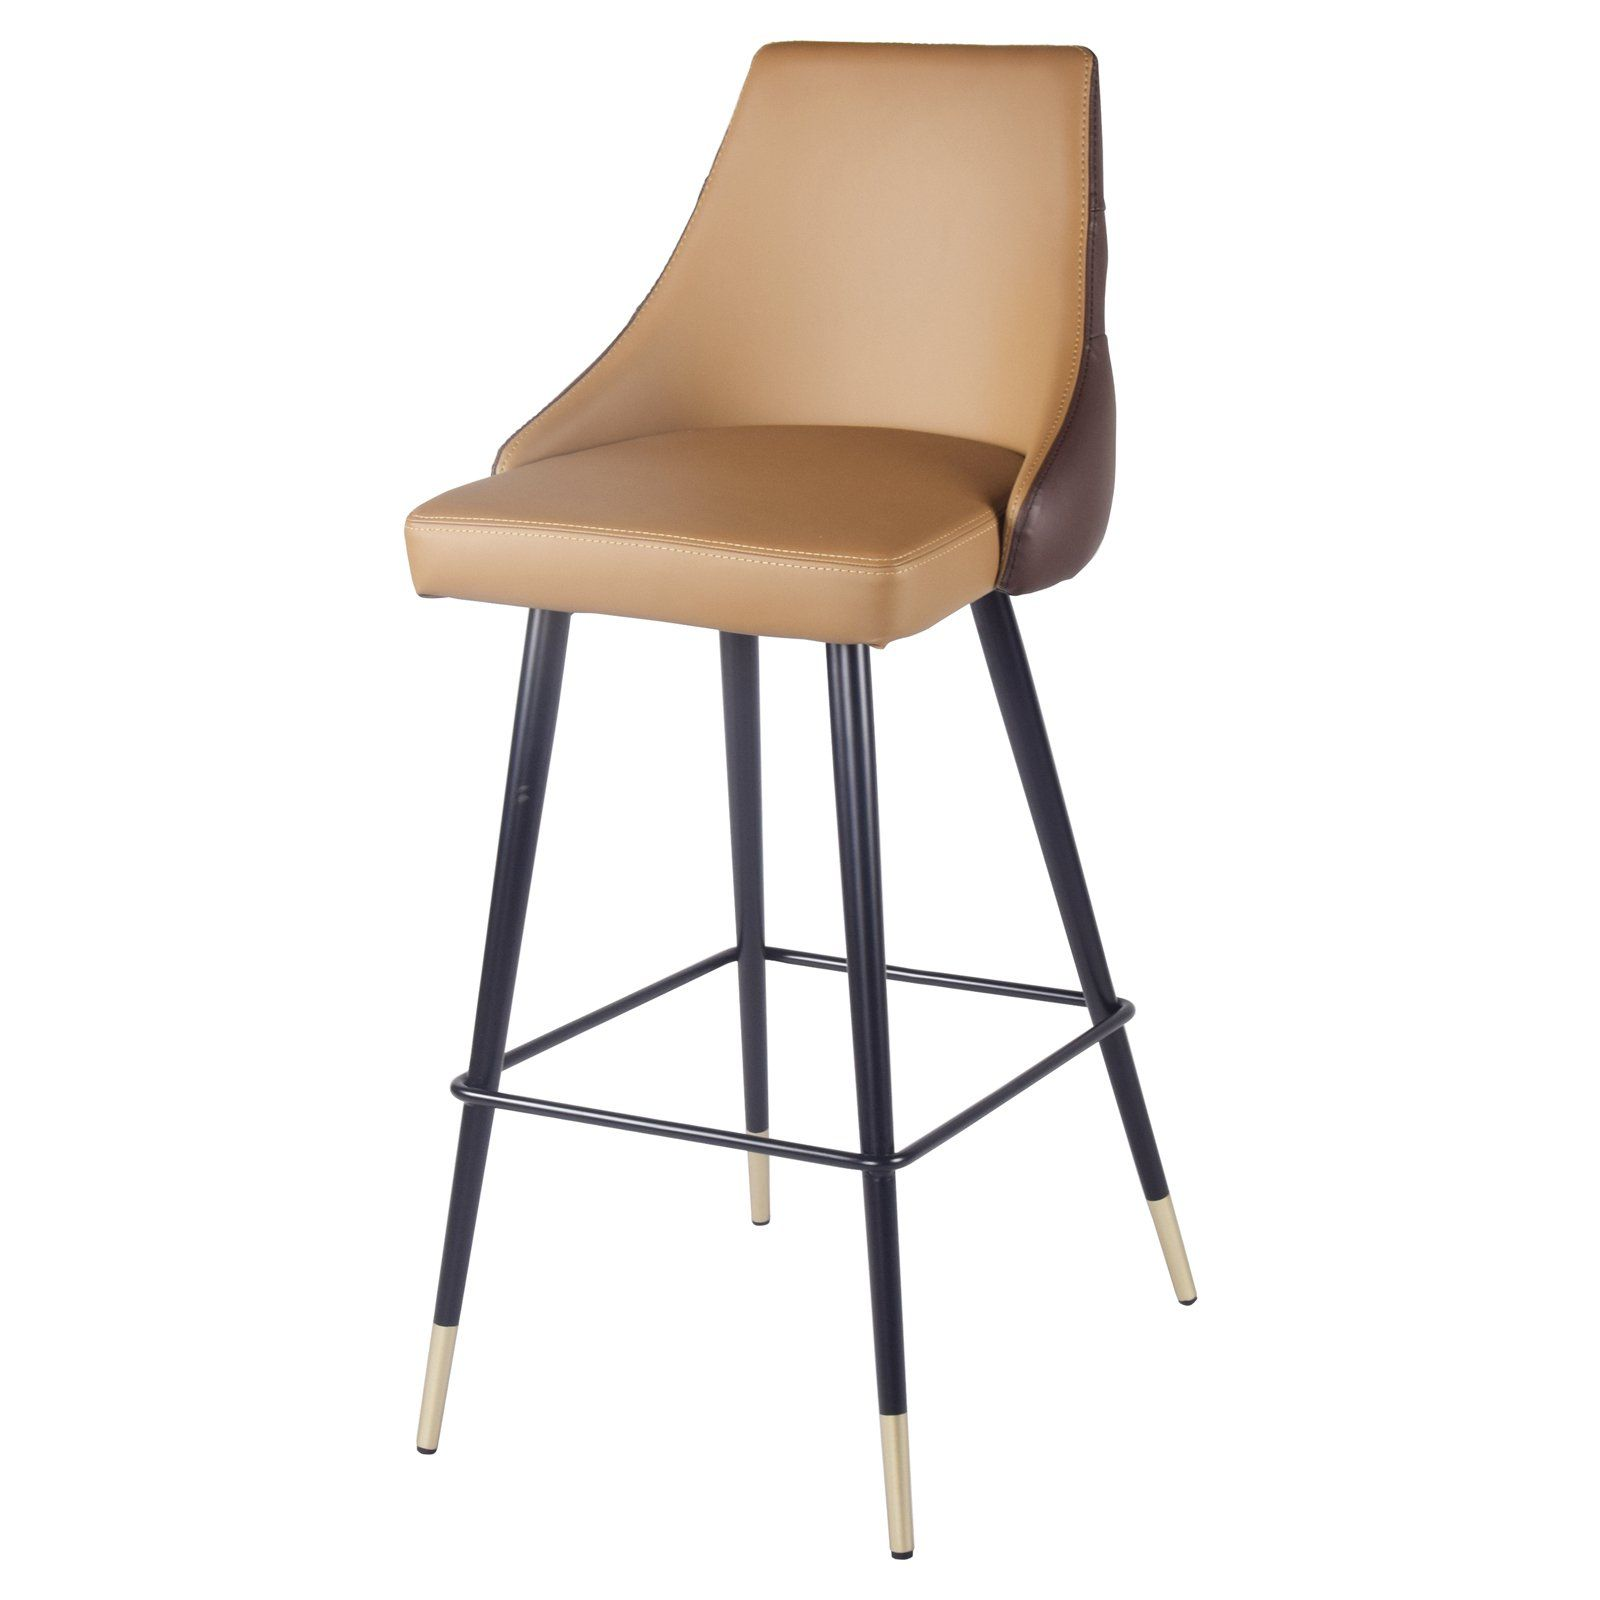 Awe Inspiring New Pacific Direct Inc Corta 30 In Bar Stool Products In Unemploymentrelief Wooden Chair Designs For Living Room Unemploymentrelieforg